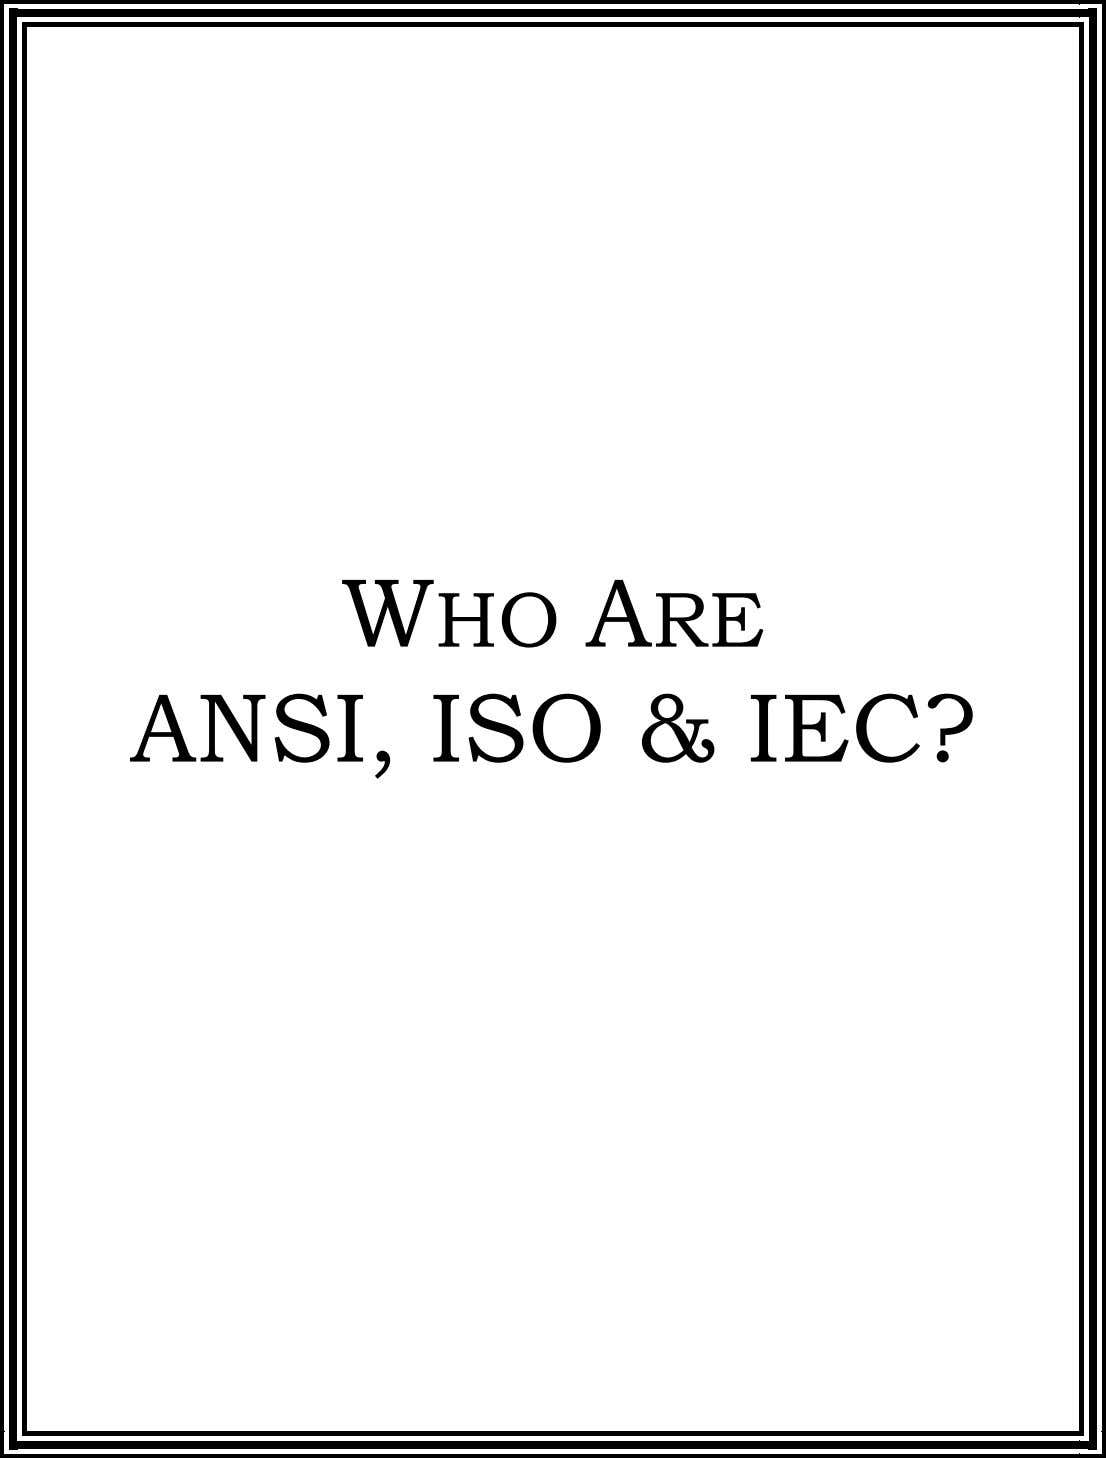 WHO ARE ANSI, ISO & IEC?